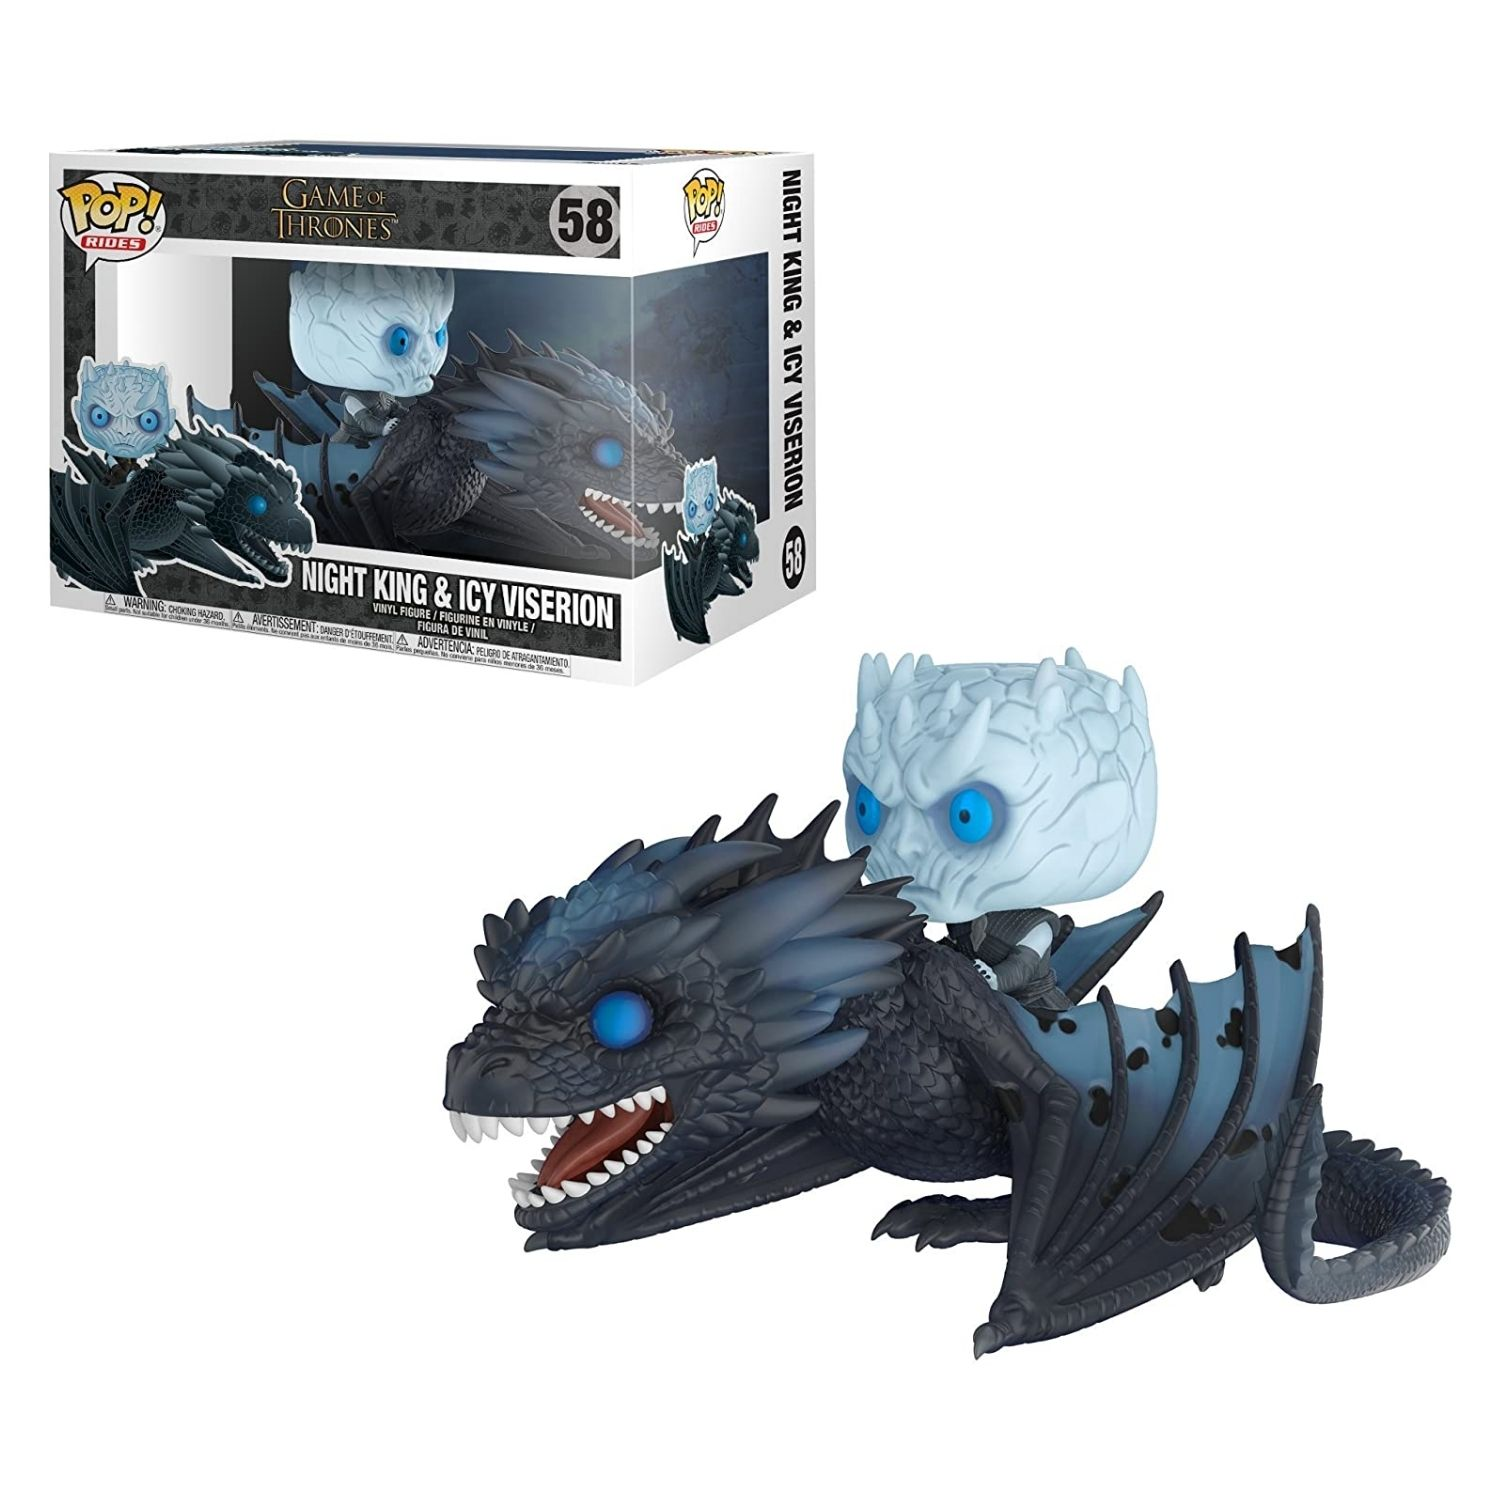 Funko Pop Game Of Thrones Night King & Icy Viserion #58  - Game Land Brinquedos